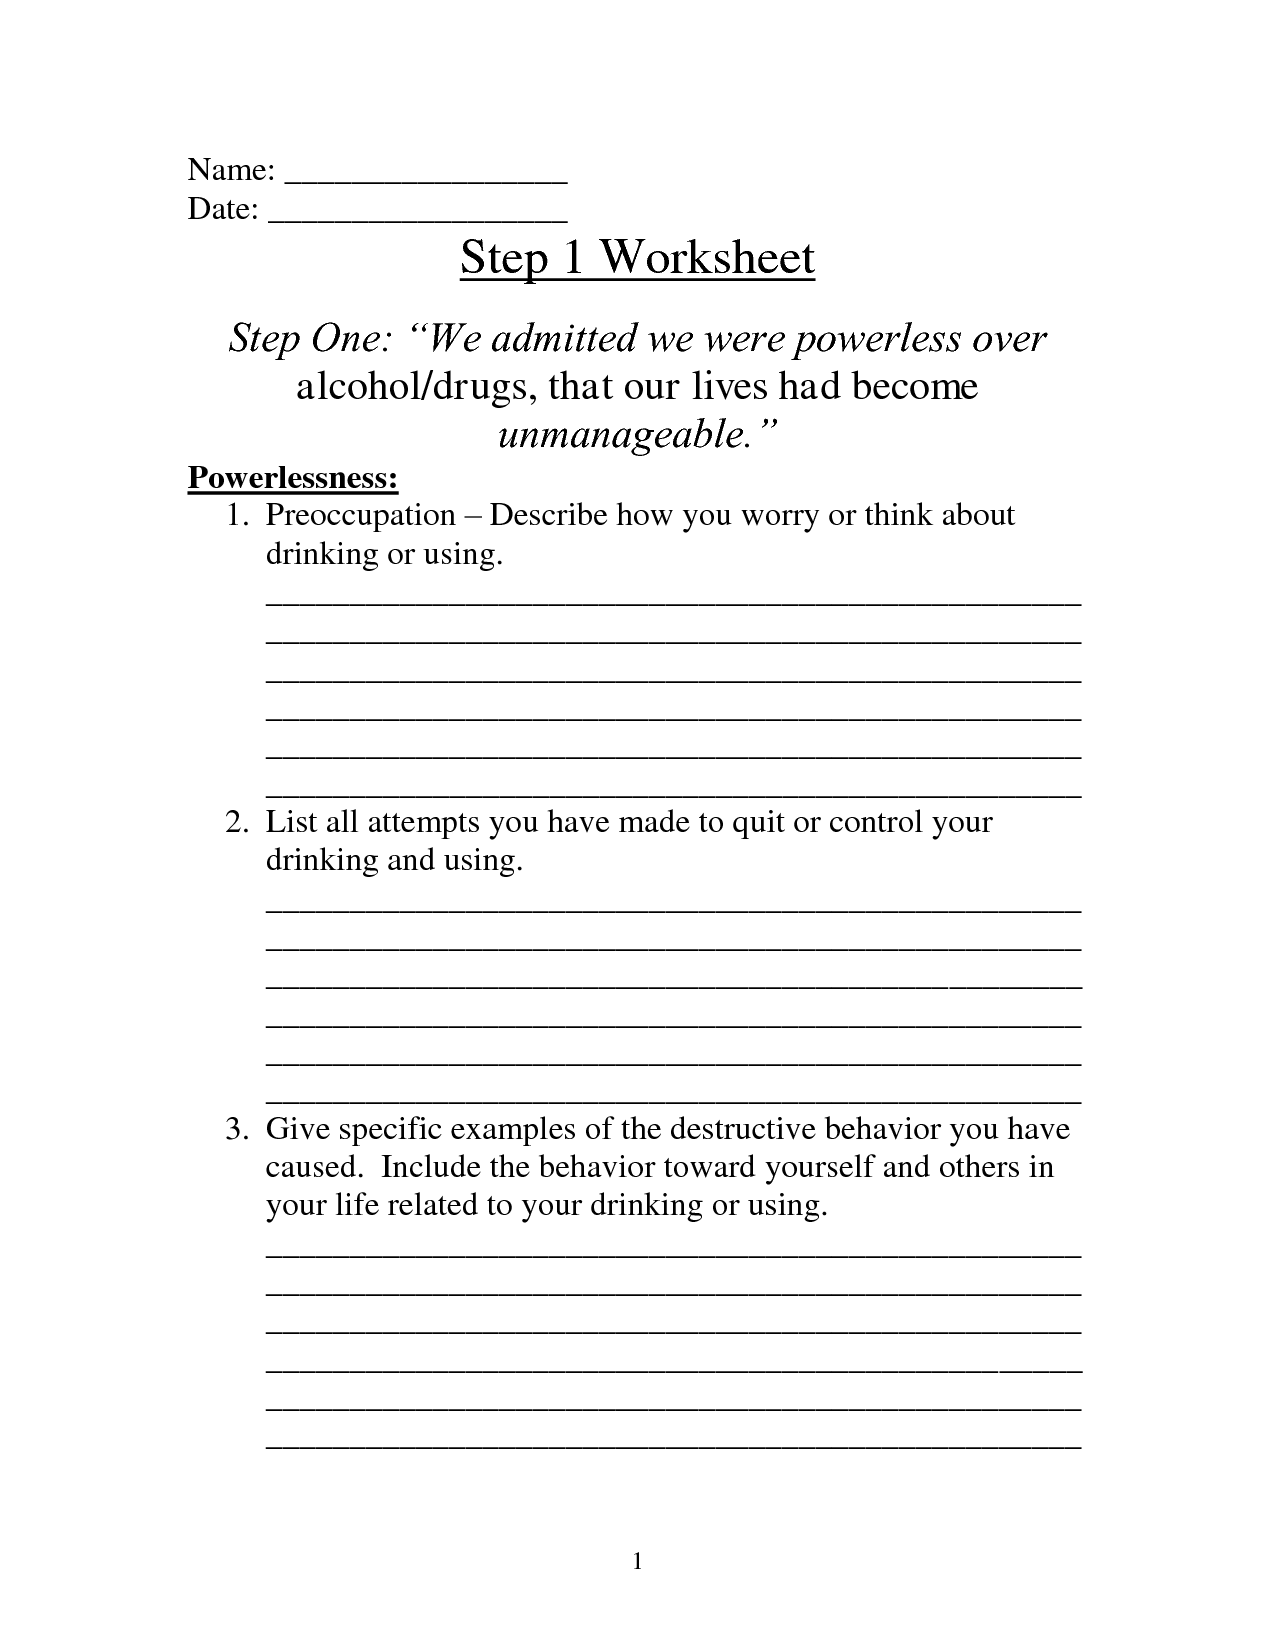 Probkems Core Worksheet 2 Steps